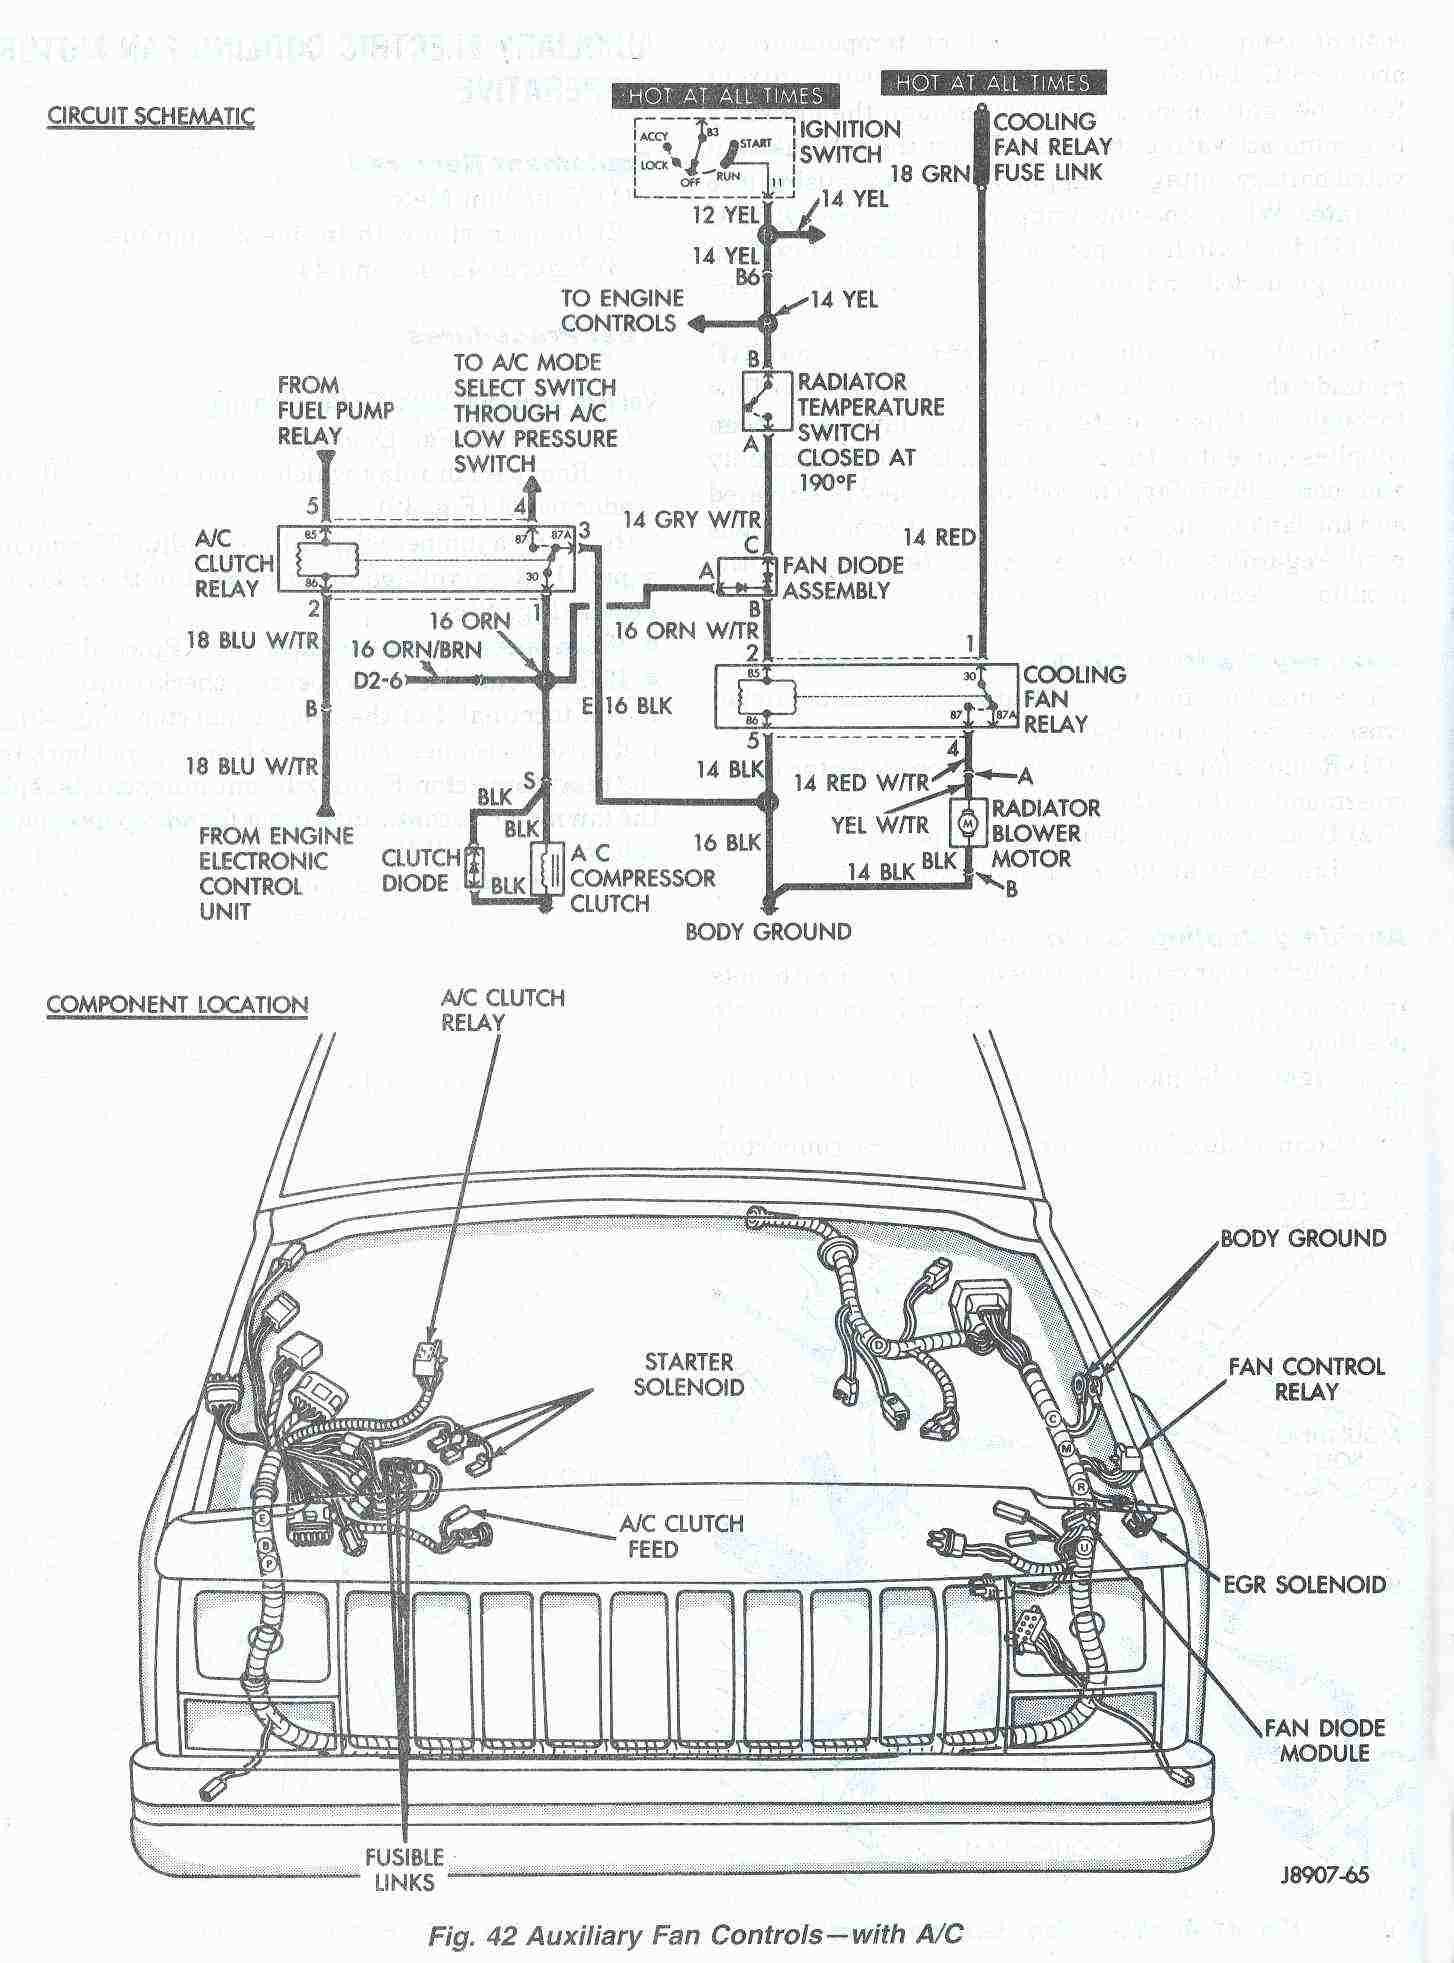 e8c83109bad6c41d377df8c1cb7a8dc4 98 jeep cherokee wiring diagram 1998 jeep 4 0l engine diagram 2001 jeep grand cherokee blower motor wiring diagram at soozxer.org